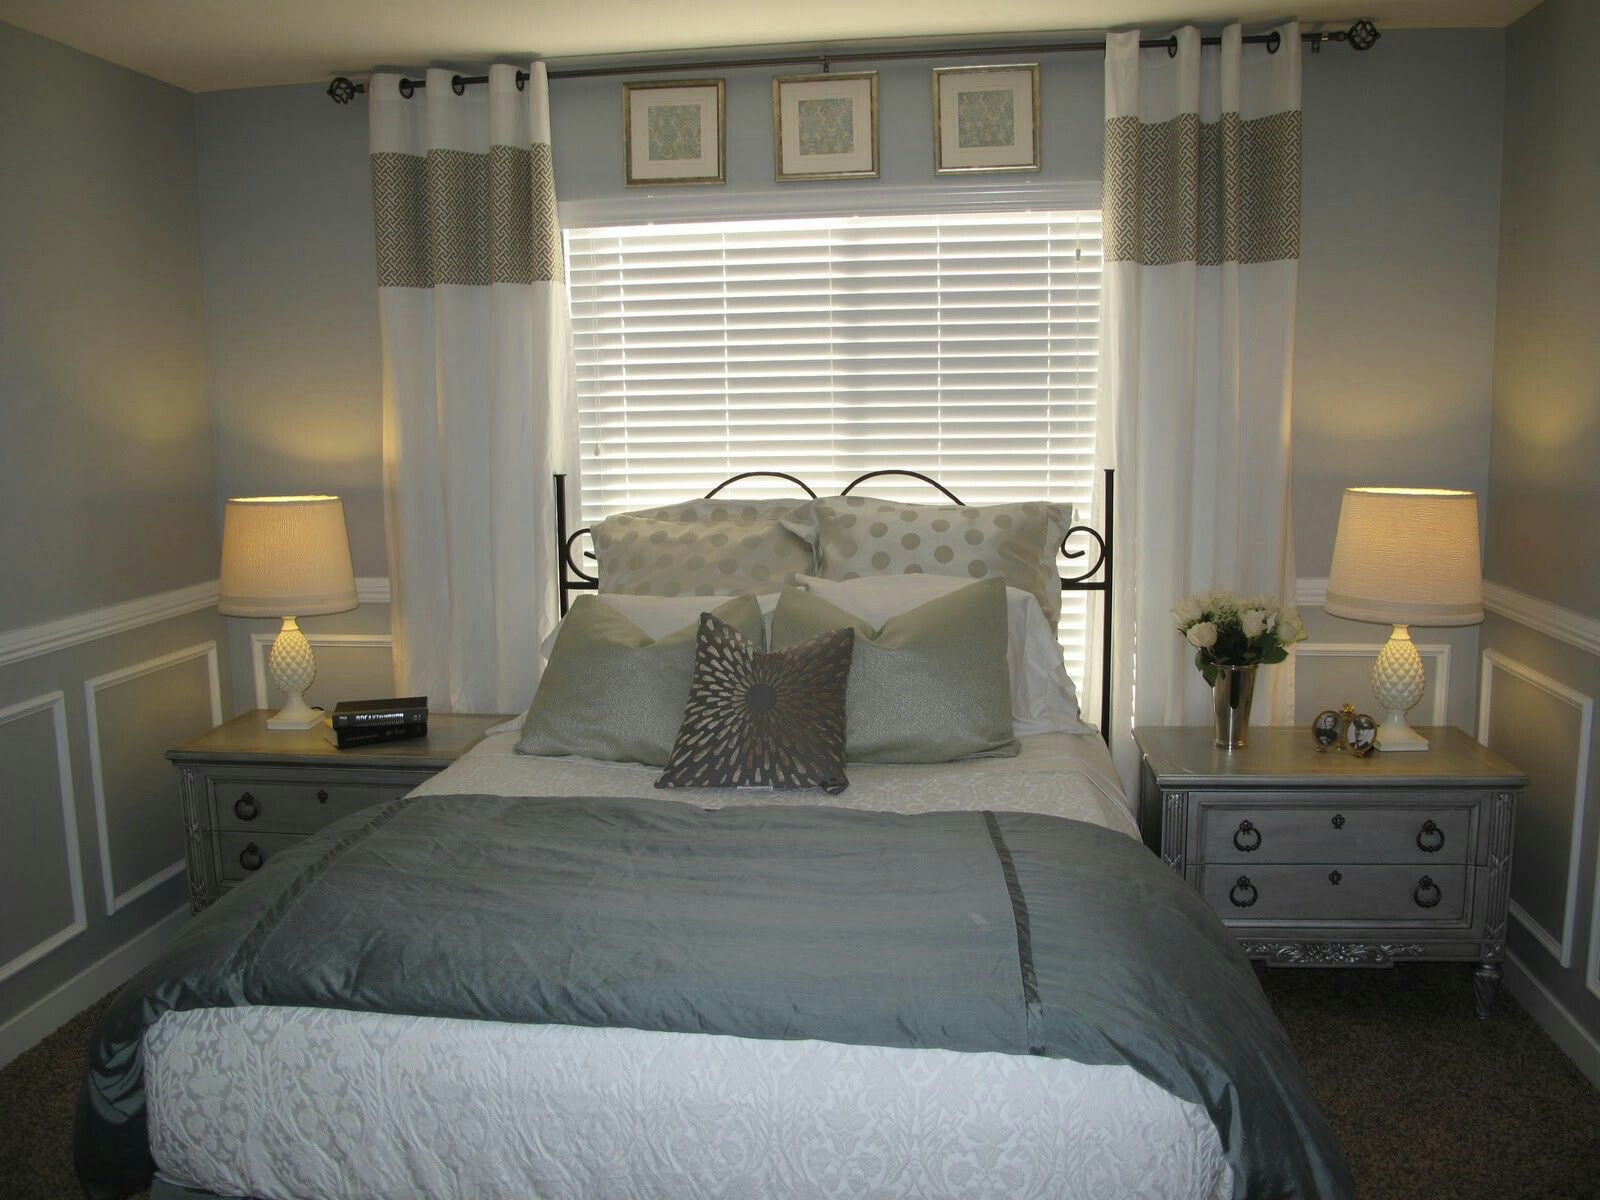 Curtains mounted high and wide with place to hang pics above window